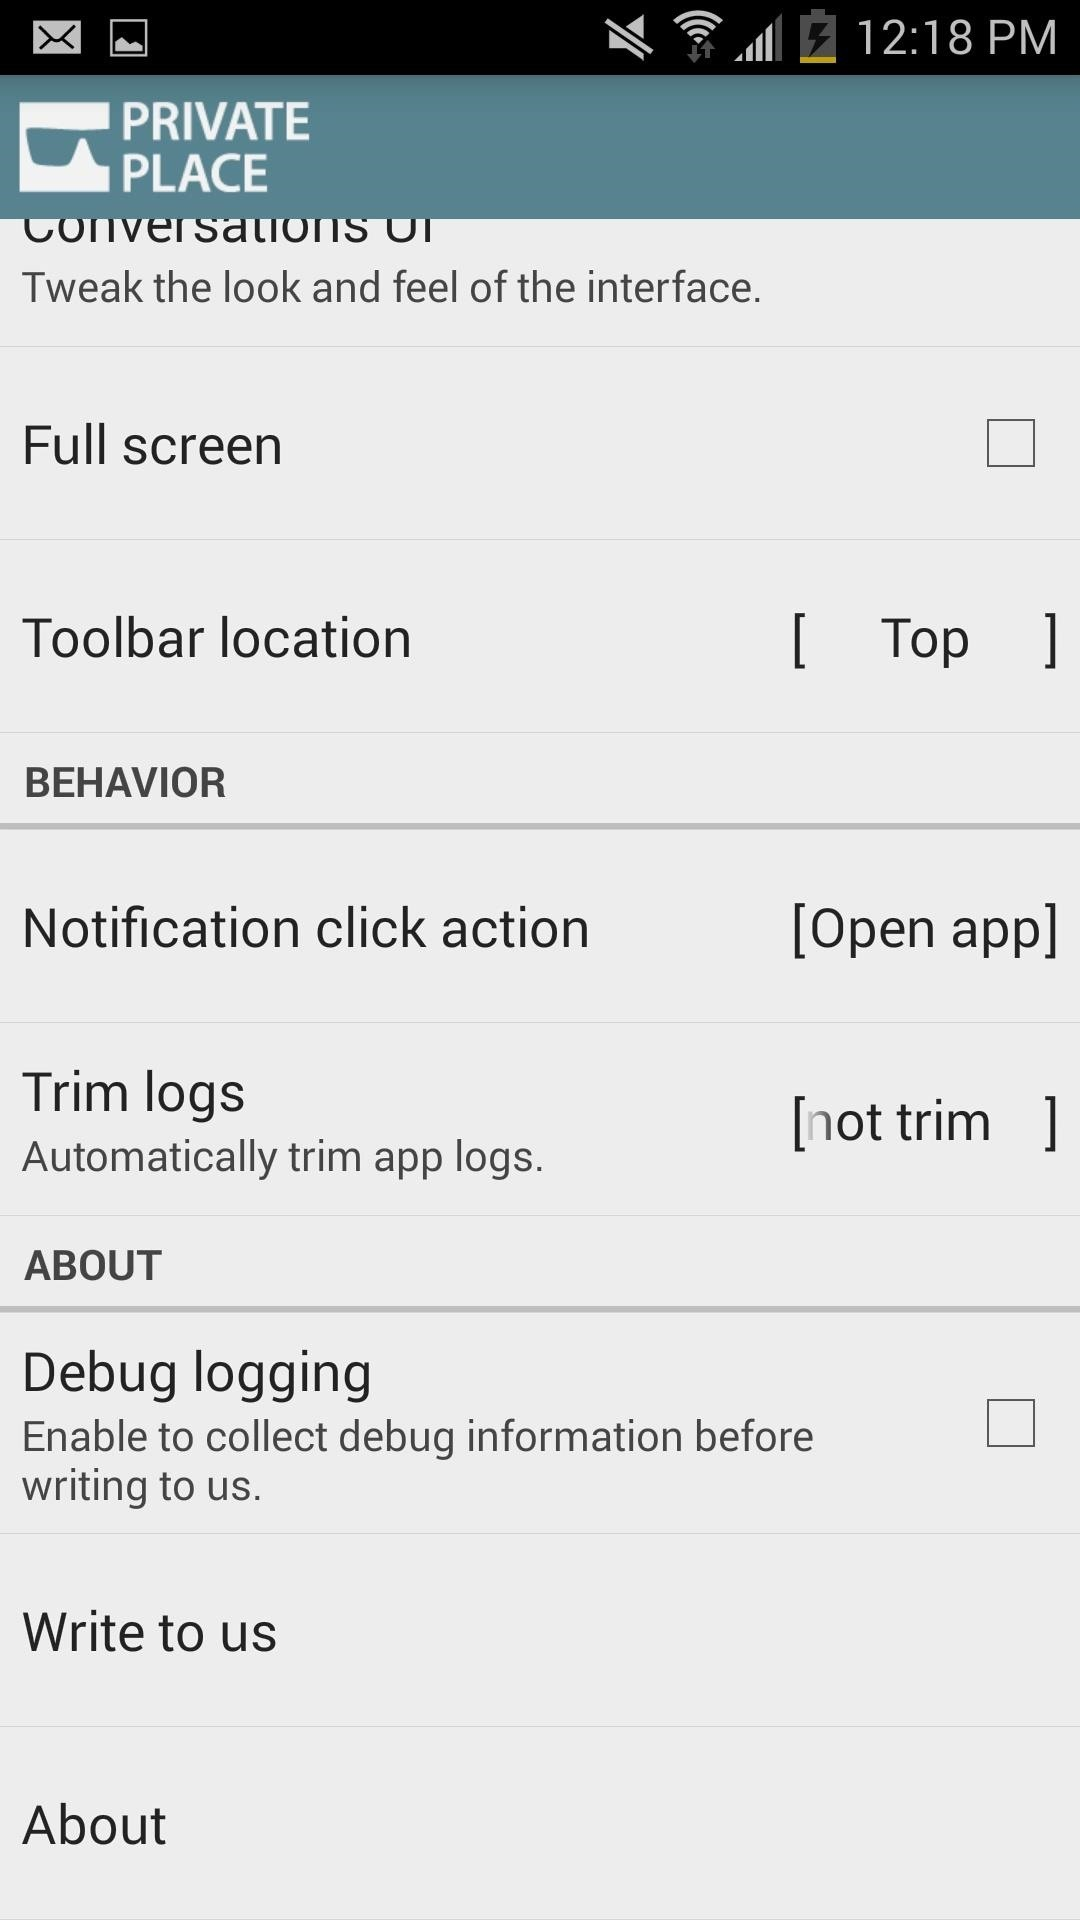 Secretly Call & Message Contacts Using an Innocent-Looking Android